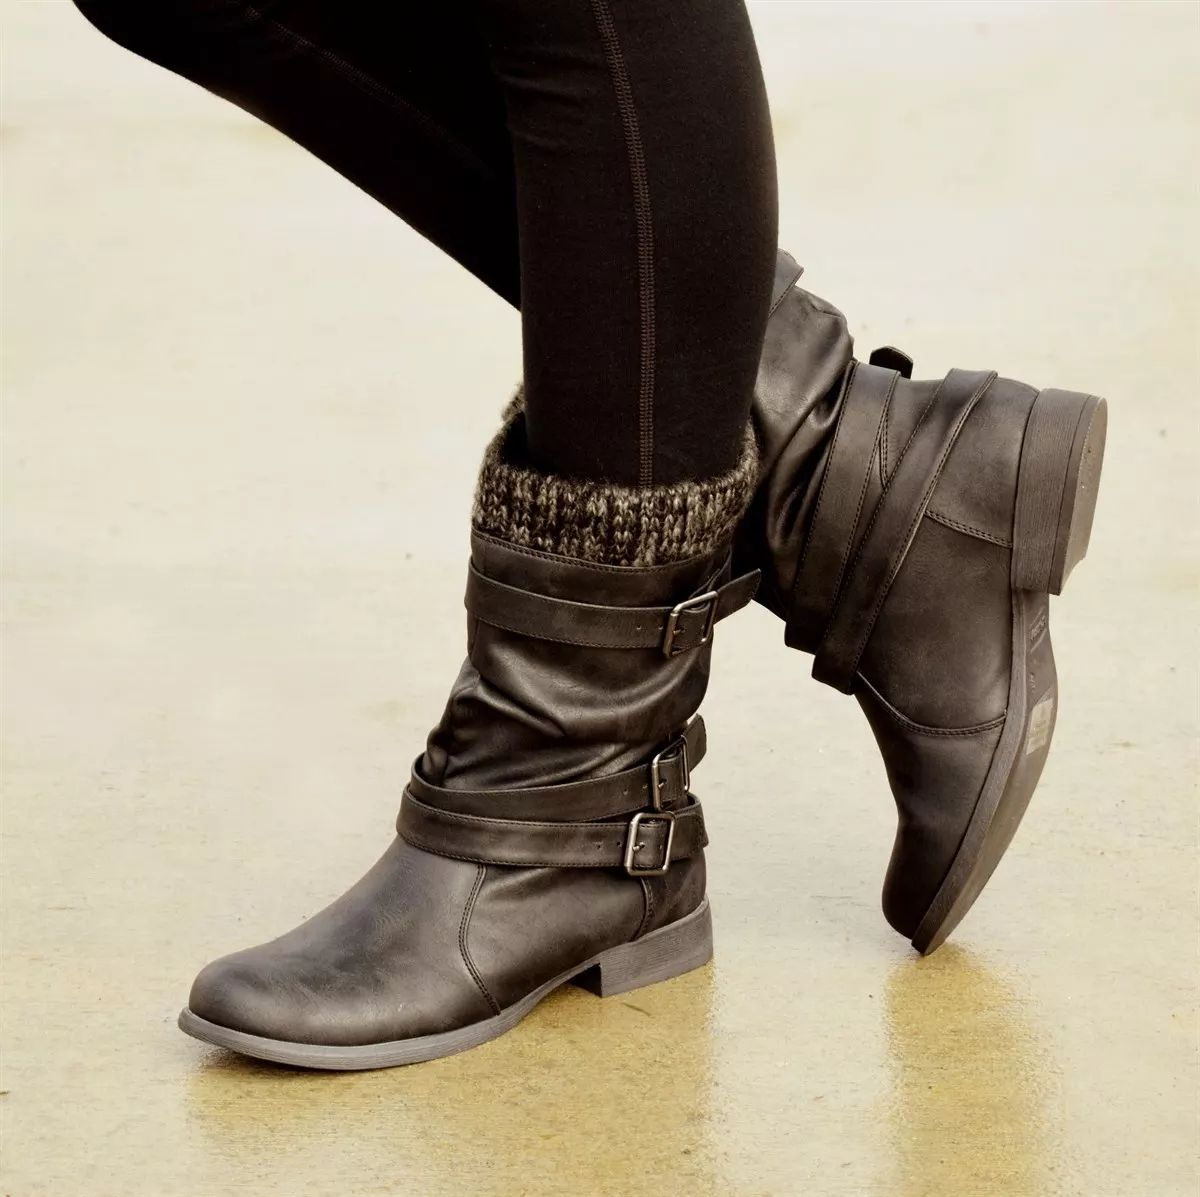 Fashion Square Low Heel Boots   Boots, Low heel boots, Mid